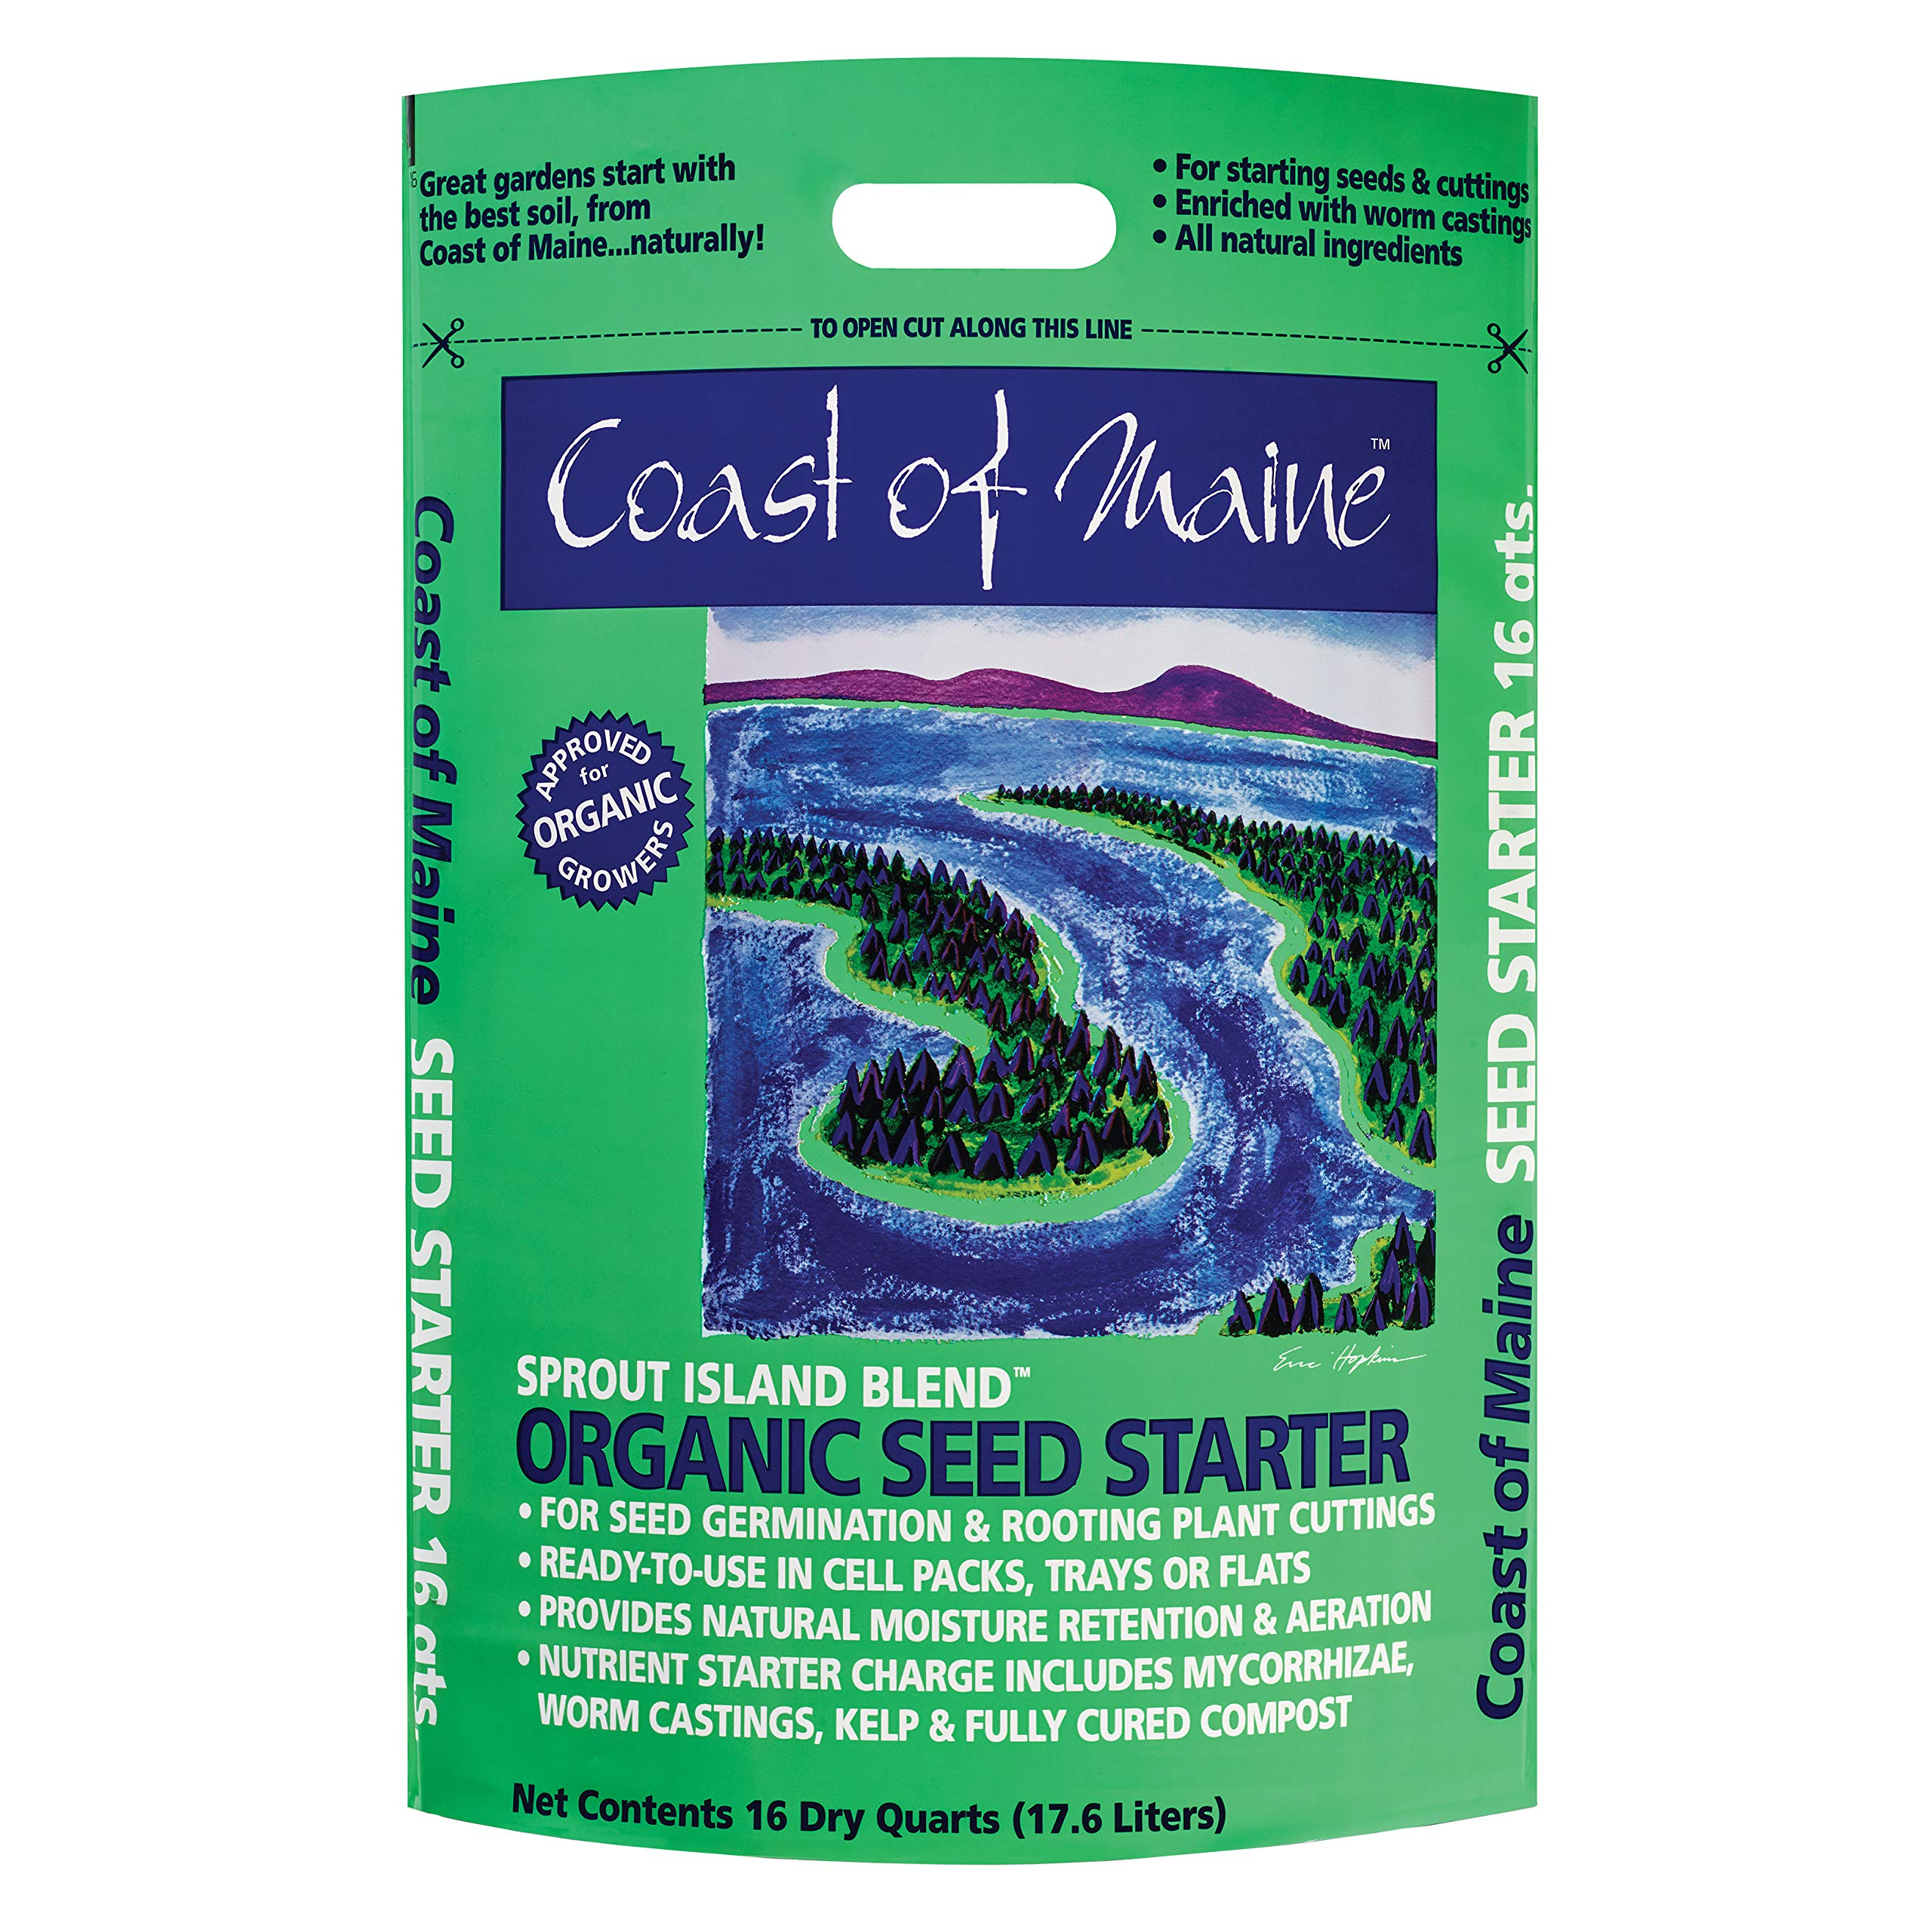 Coast of Maine - Organic Seed Starter - Sprout Island Blend by Coast of Maine